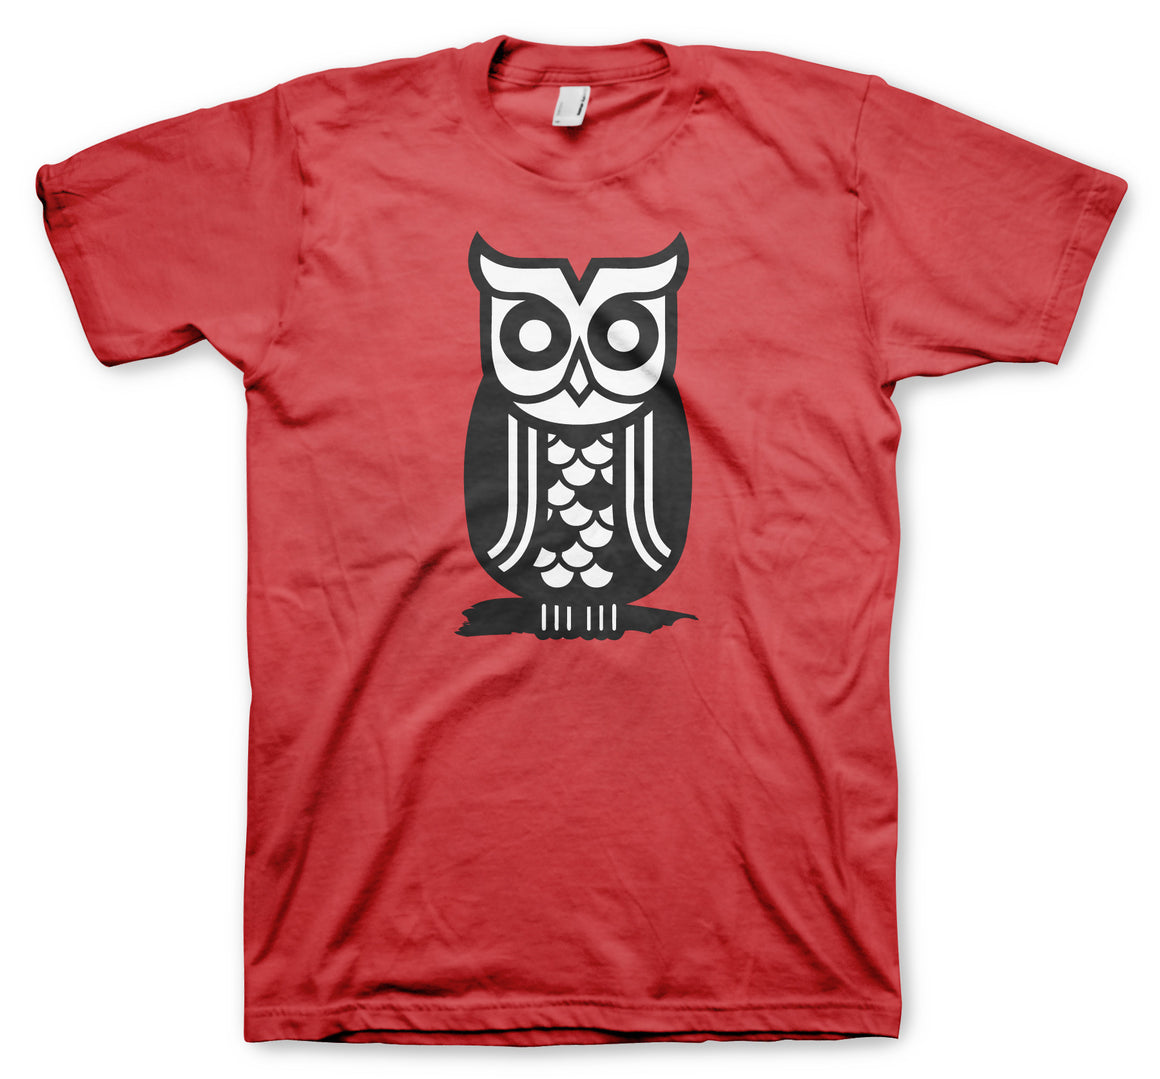 Night Owl Logo Tee